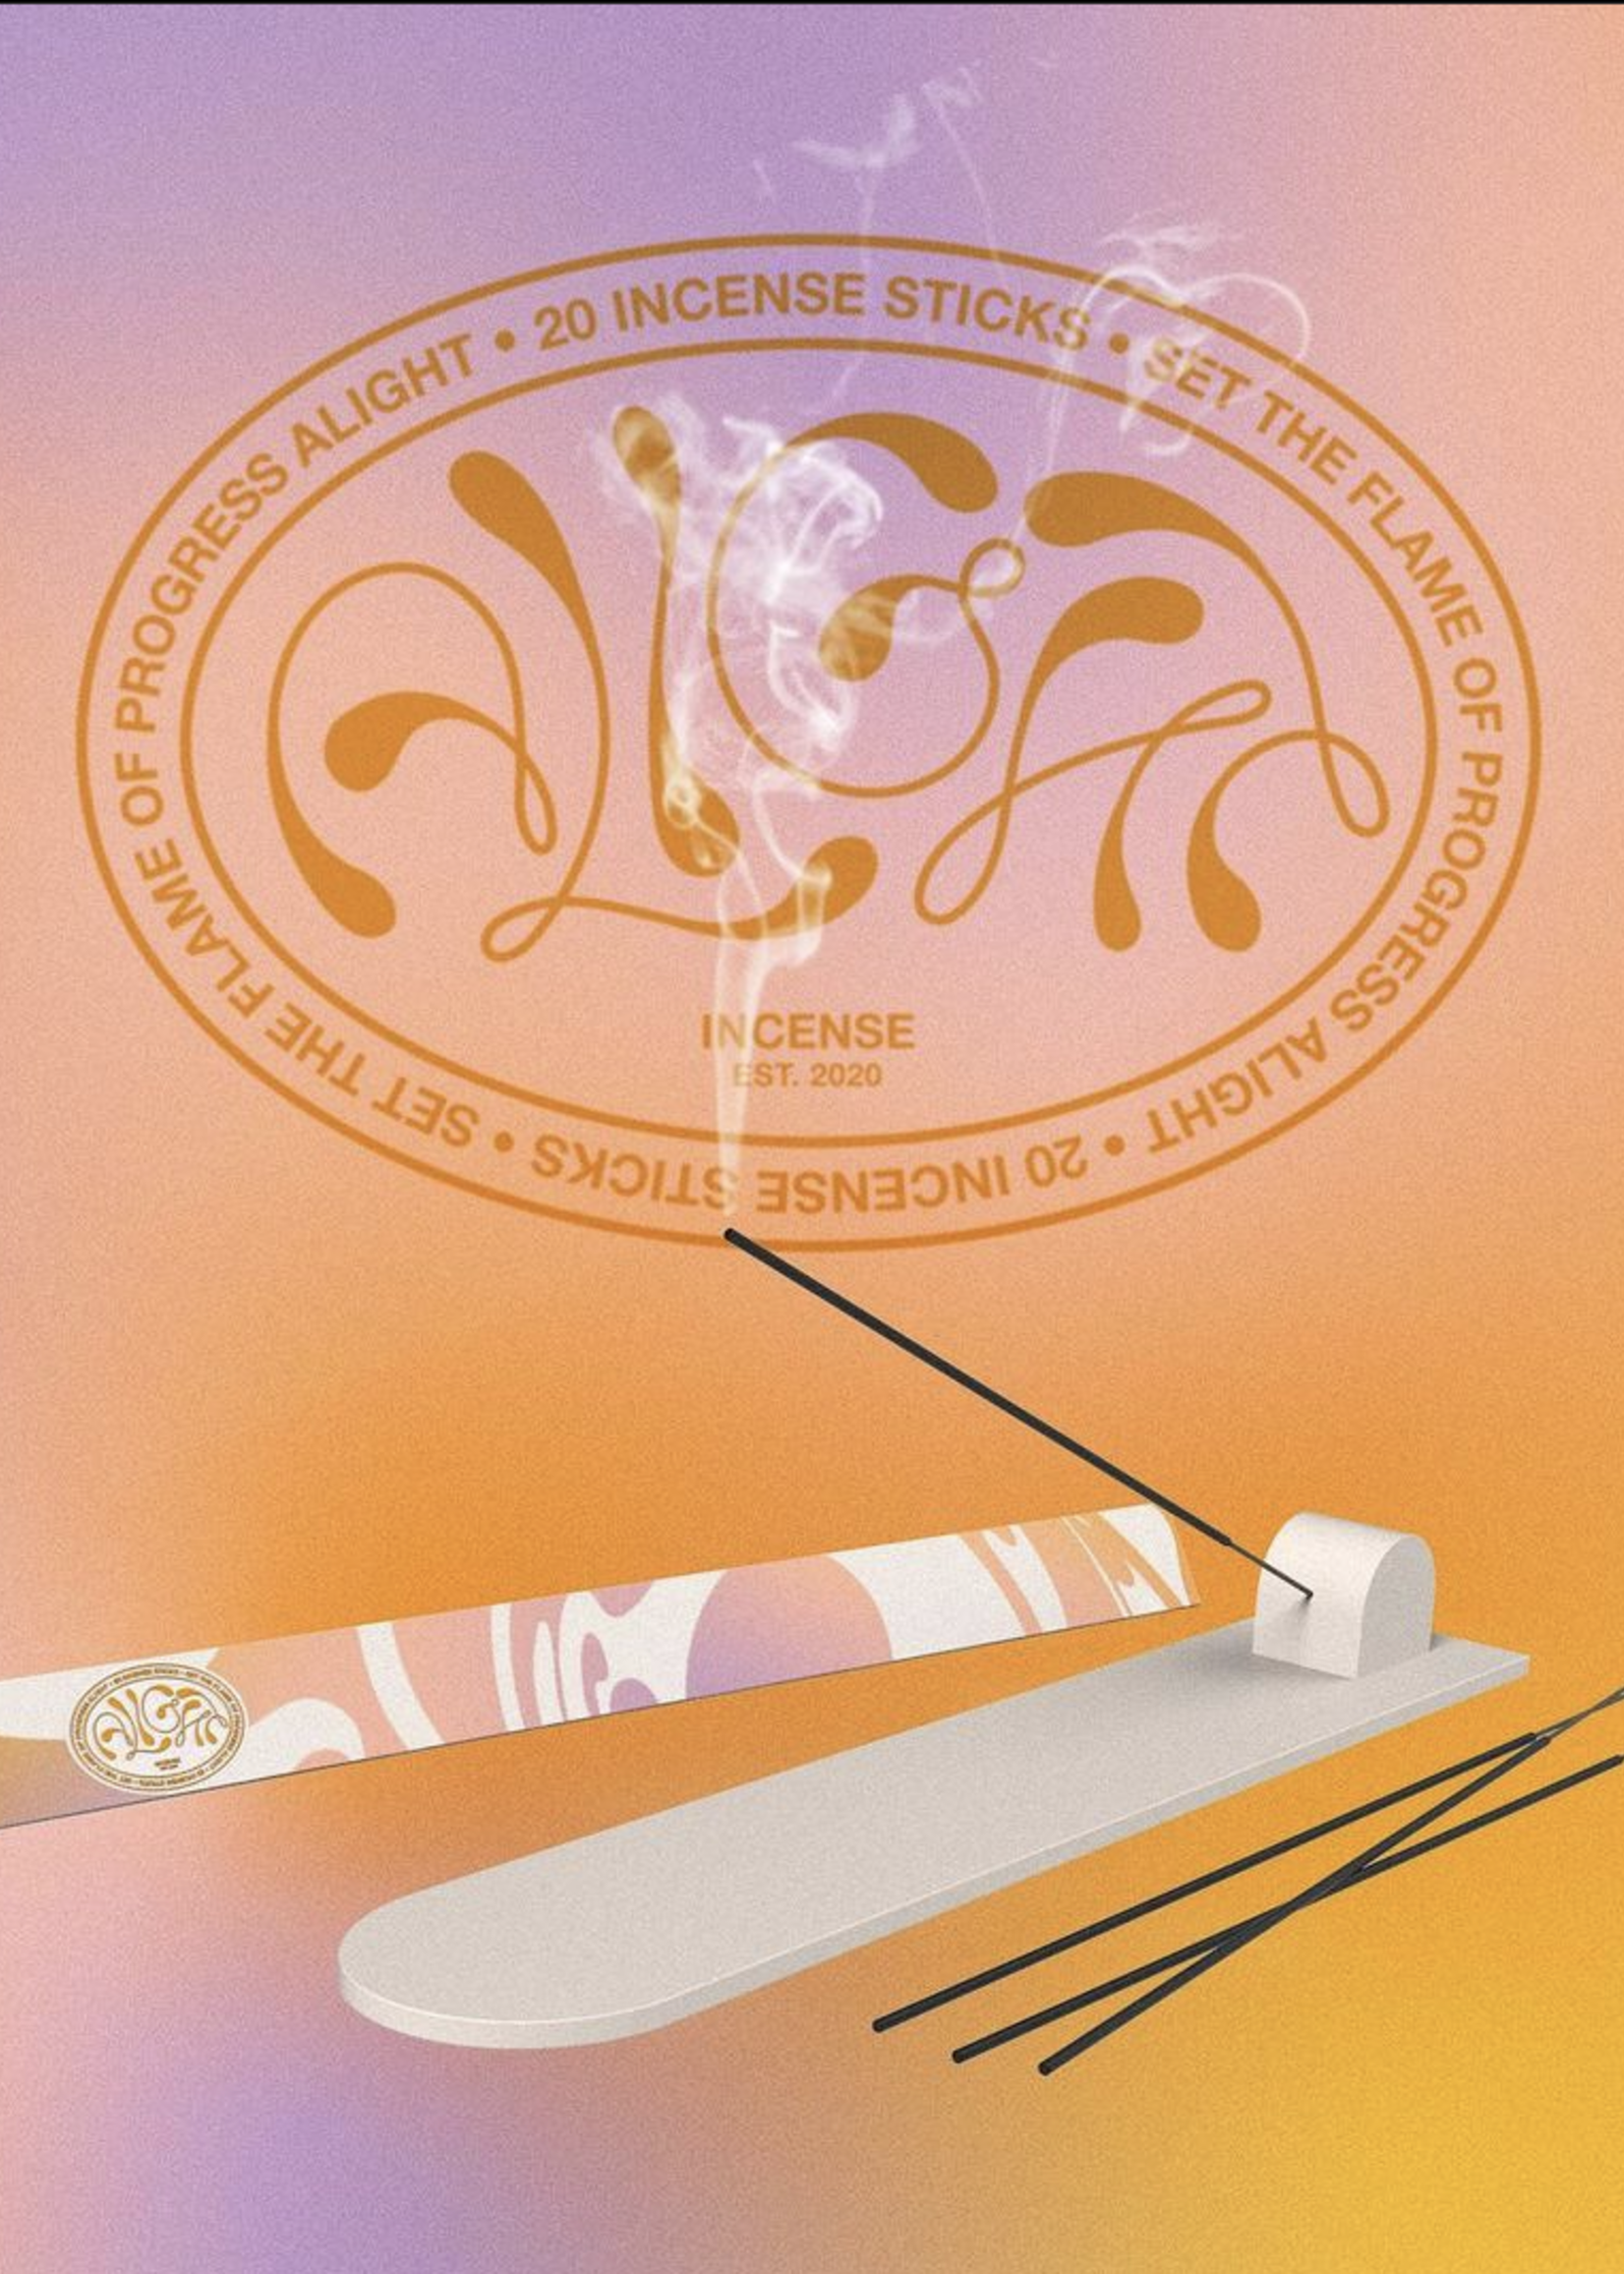 Alight Incense Incense by Alight